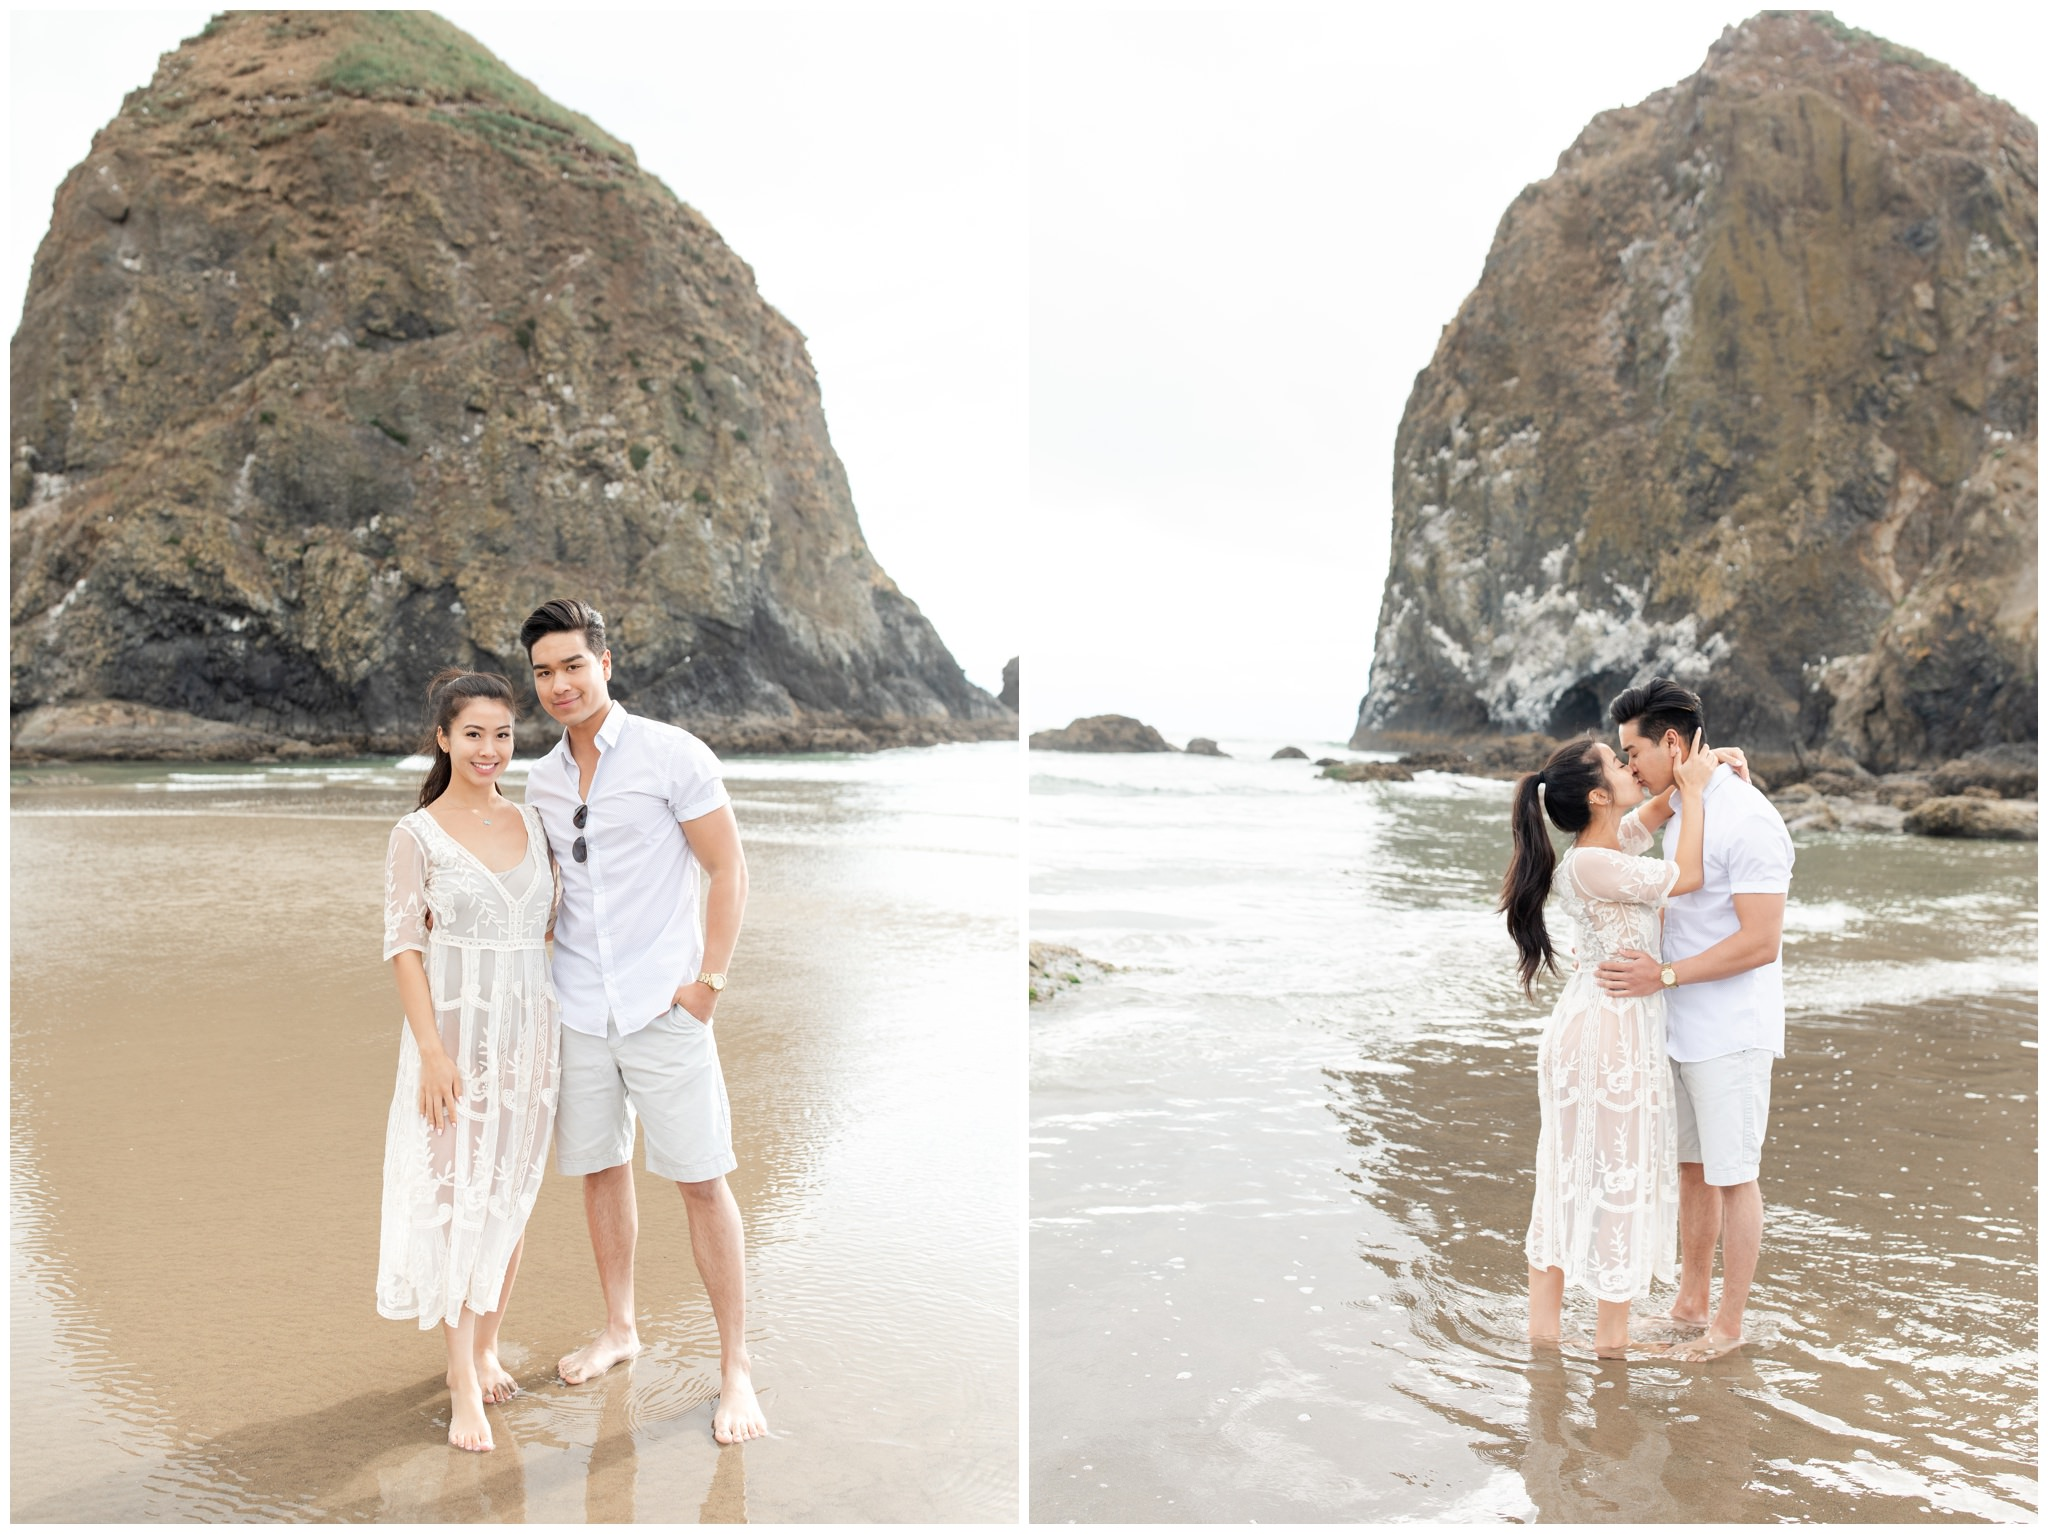 Cannon Beach engagements